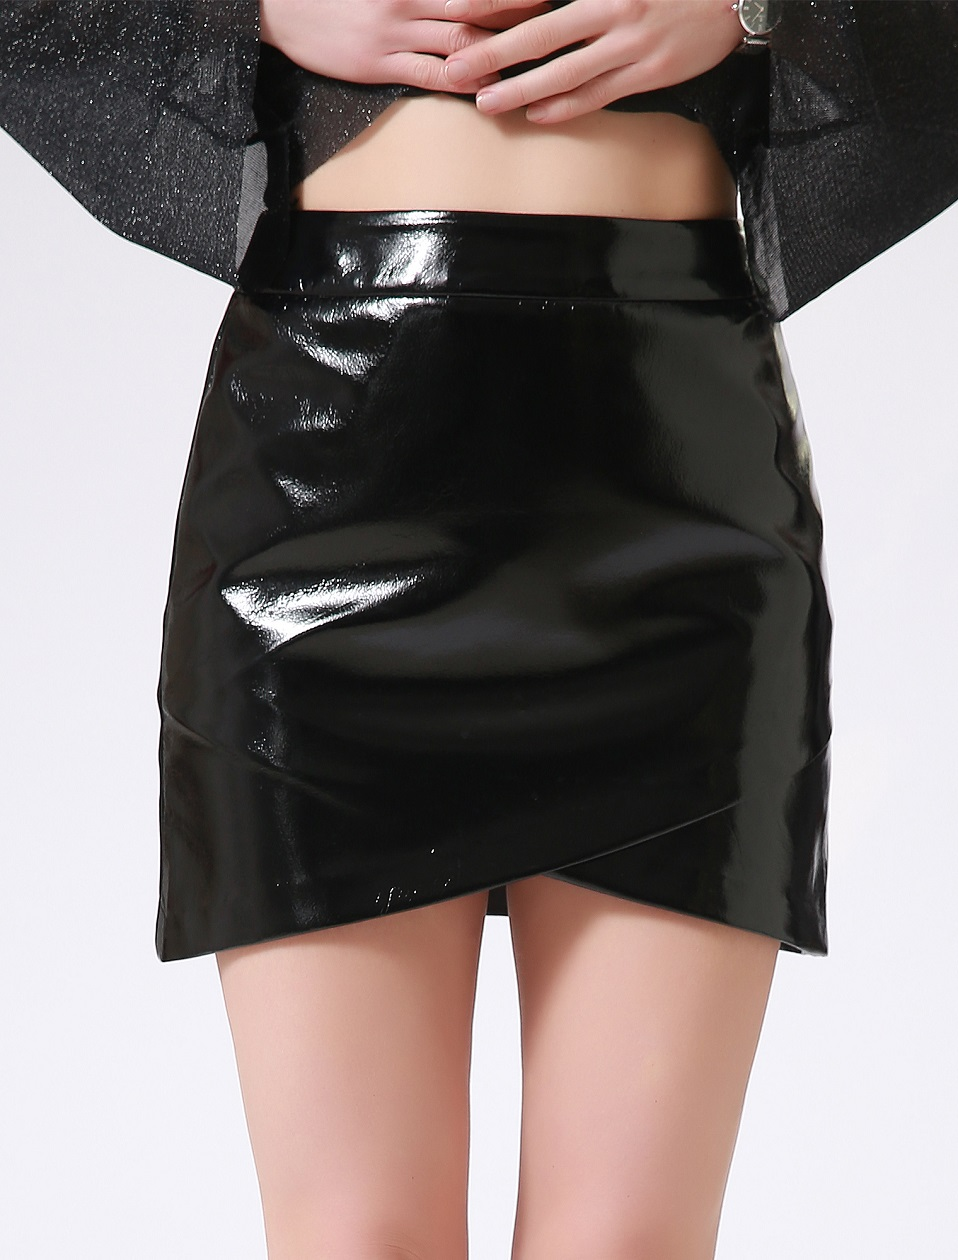 Autumn Winter Women Sexy Mini Skirt Black faux Patent Leather Female Short Pencil Skirt Zipper Fashion Streetwear Skirts Talever 5